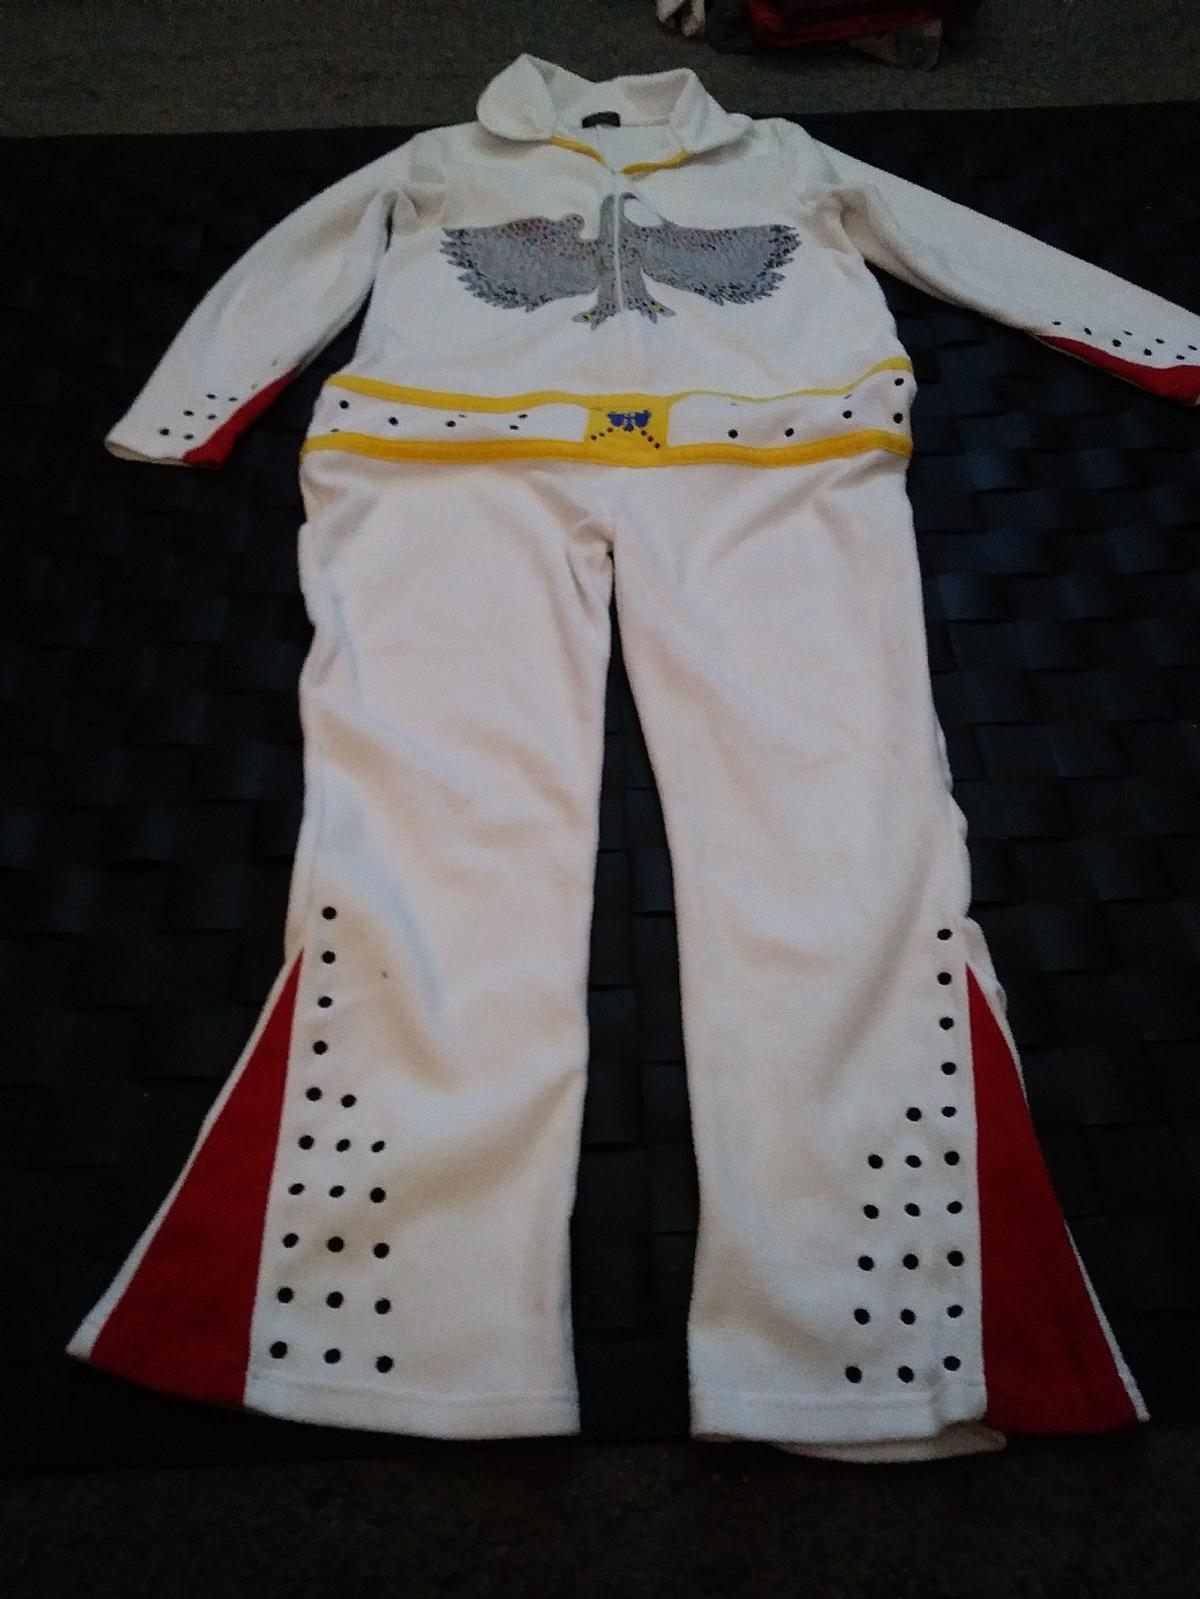 Teddy Bear Onesie Infant Onesie Size 12-18 Mos Elvis Presley Infant